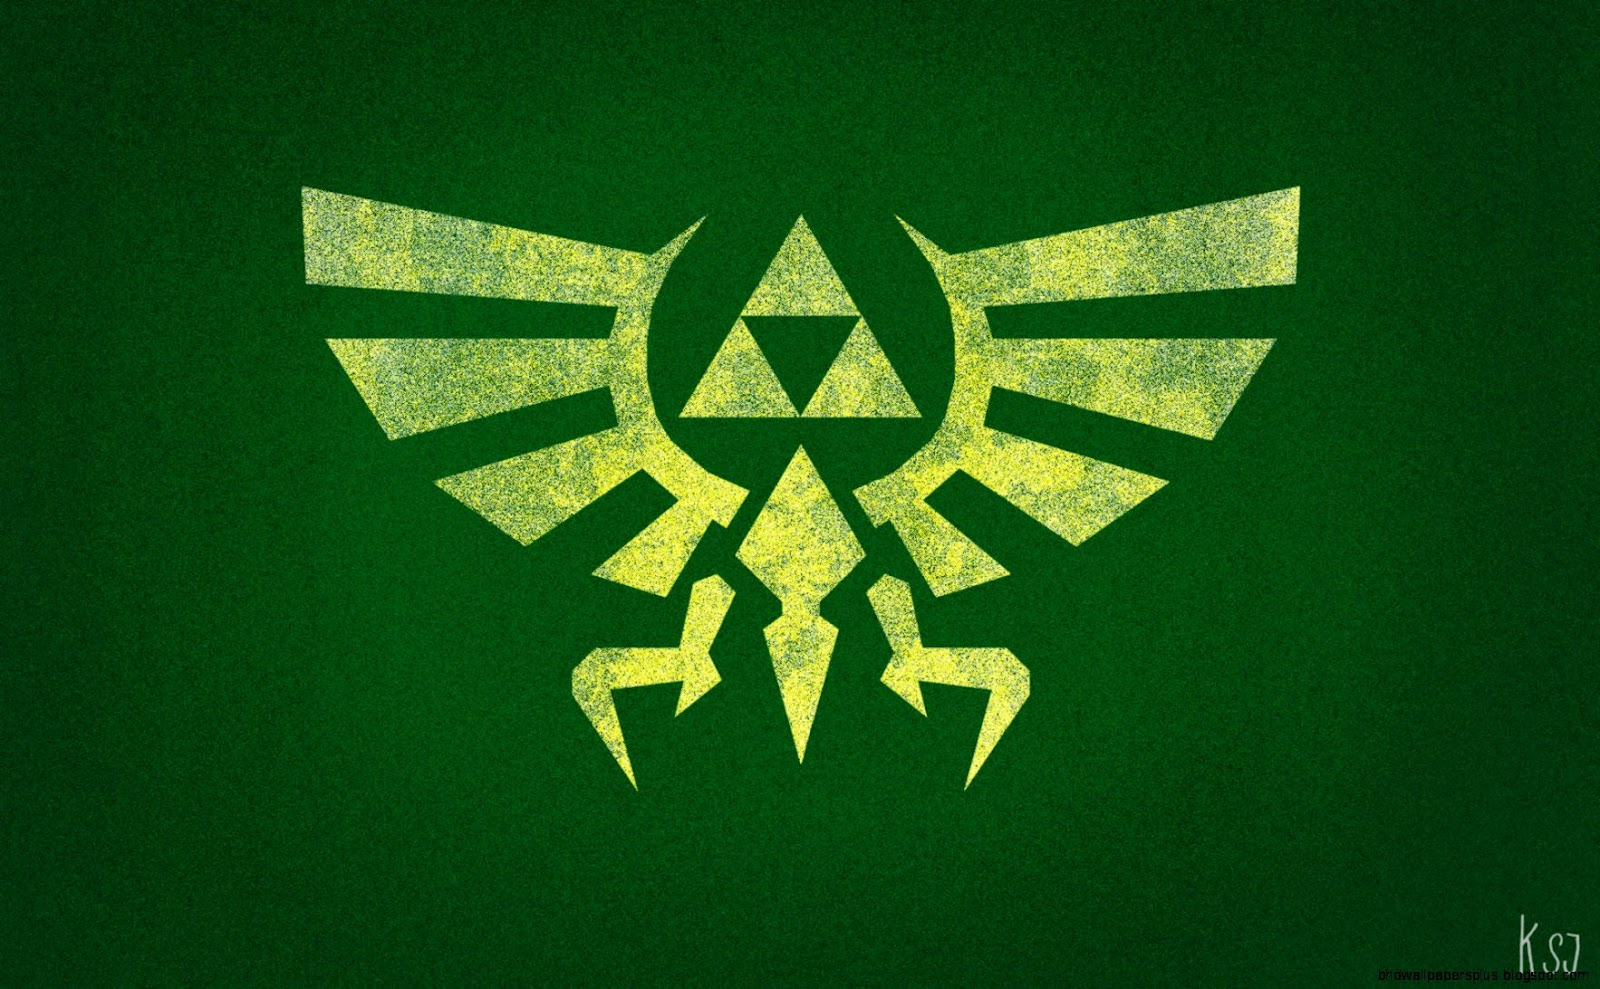 Triforce Wallpaper Hd Wallpapers Plus